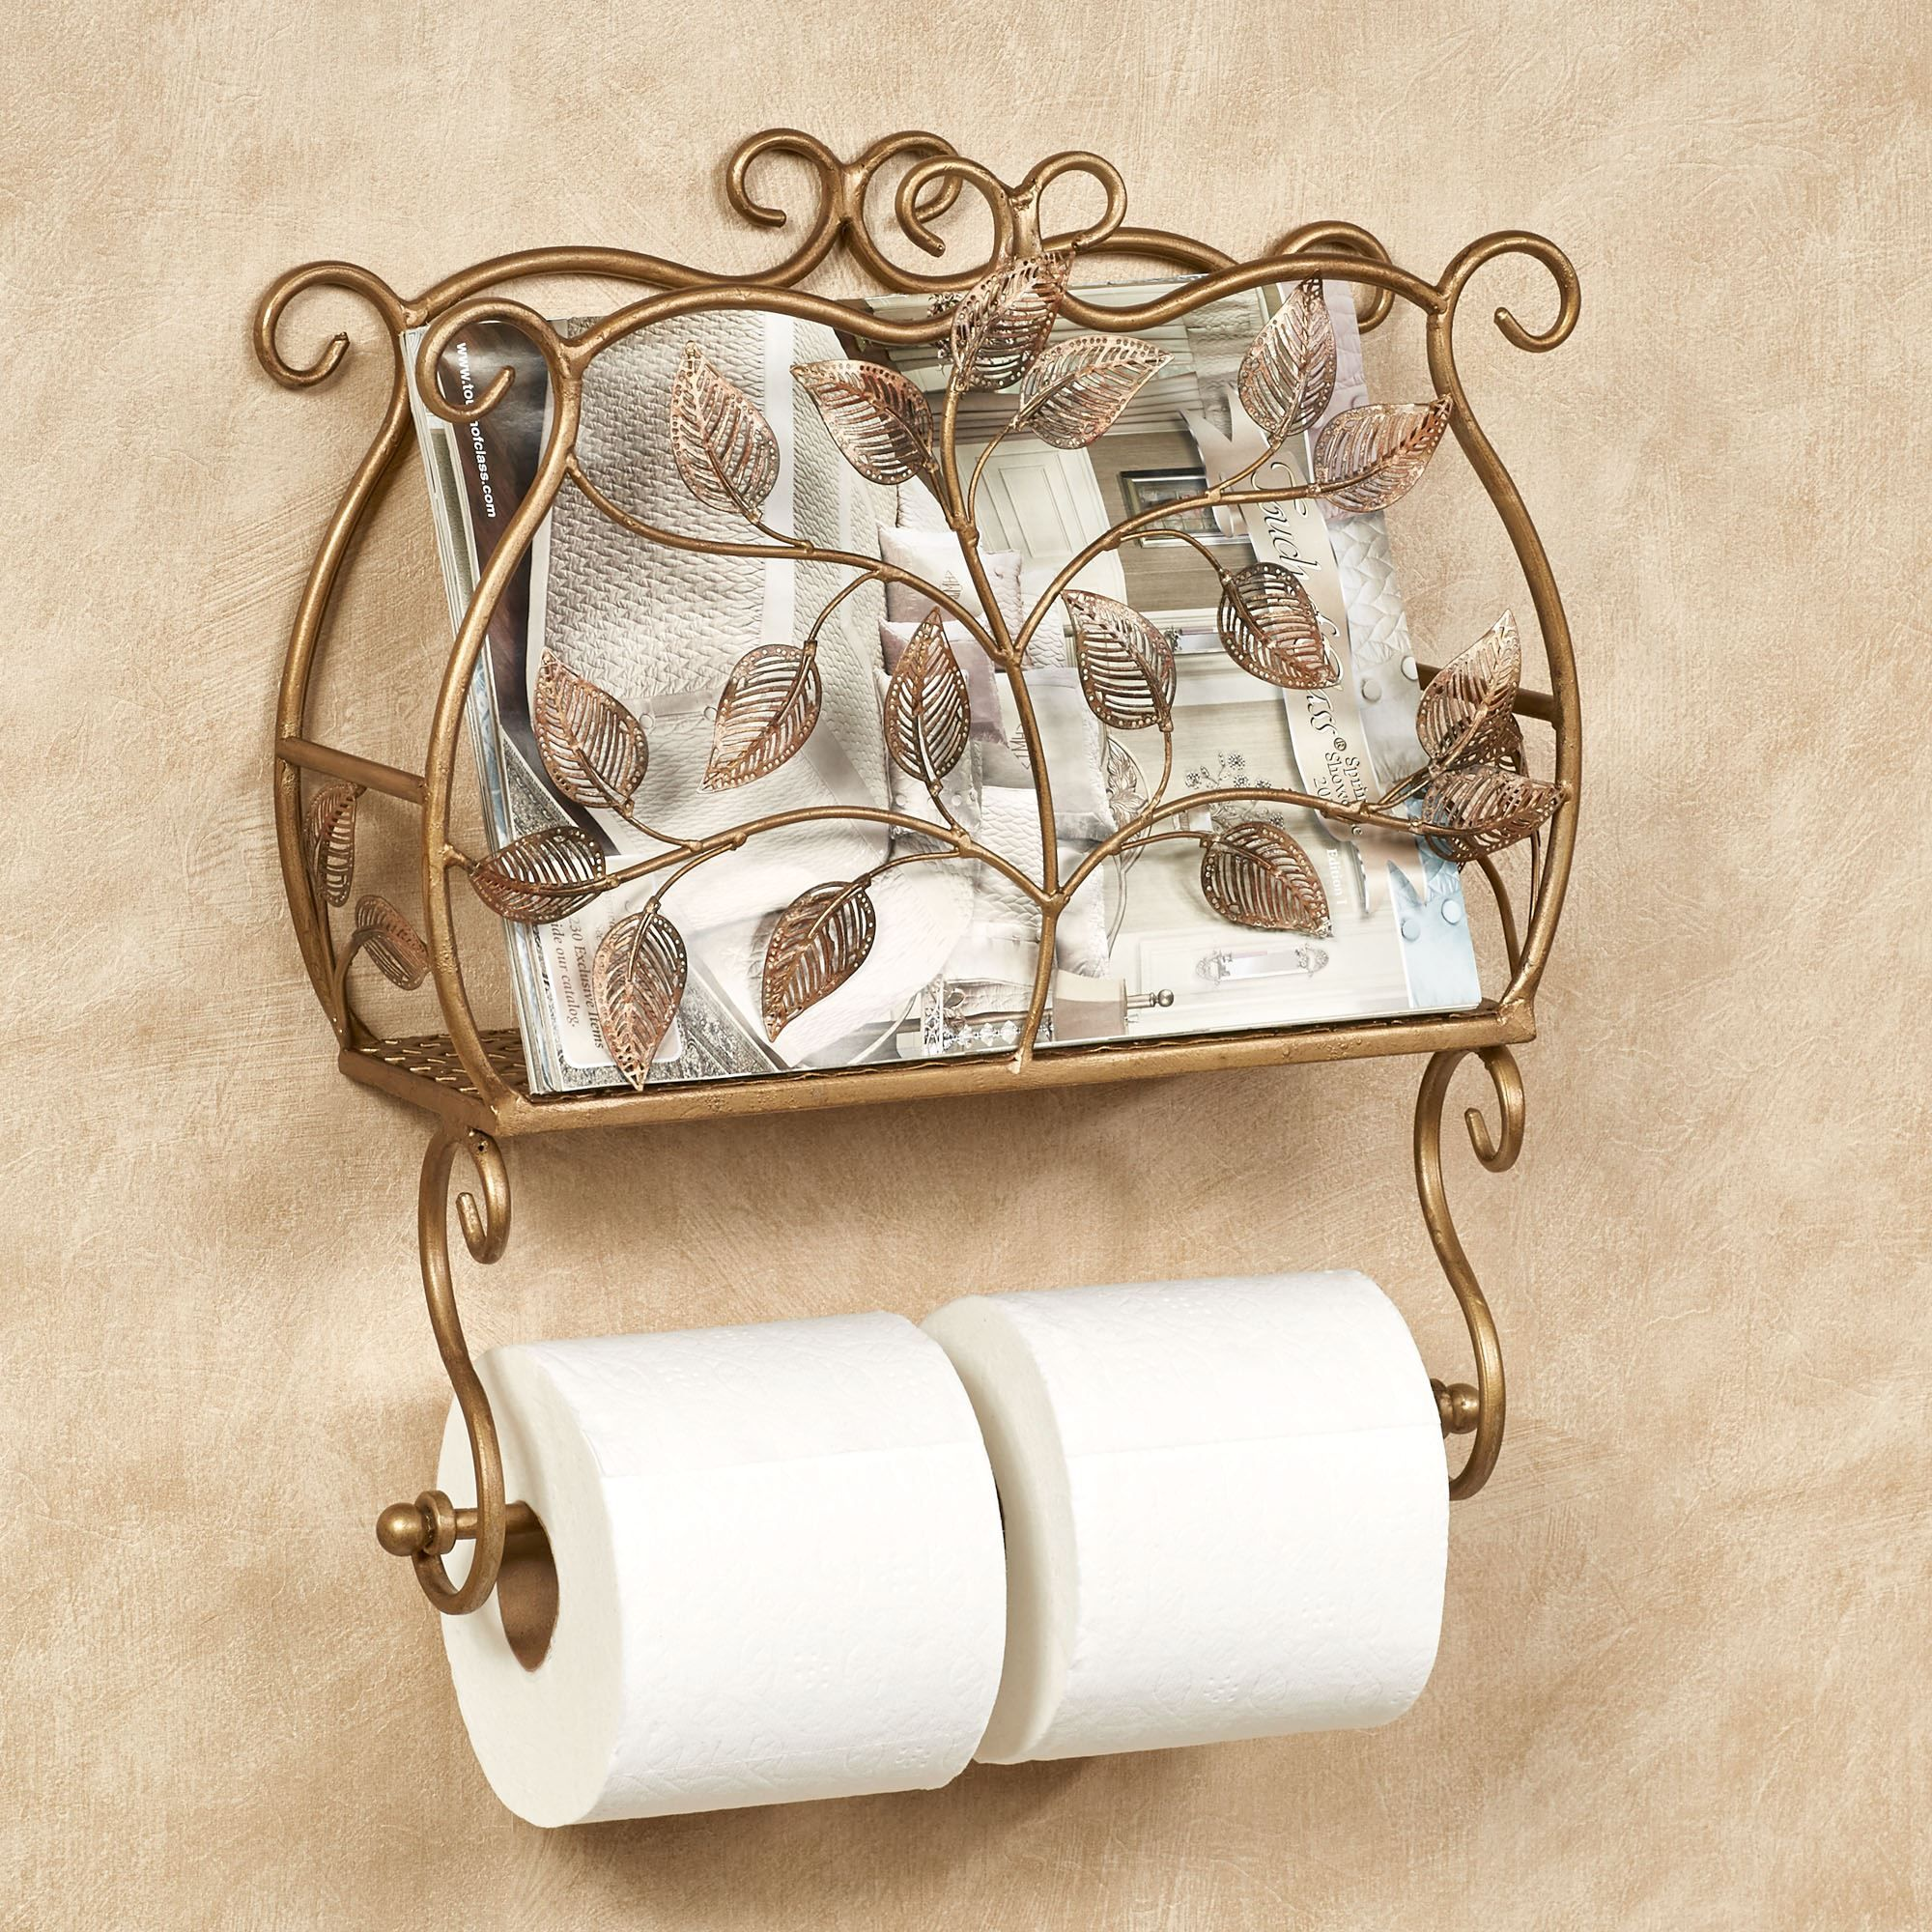 Eden Wall Toilet Paper Holder And Magazine Rack Toilet Paper Holder Toilet Paper Bronze